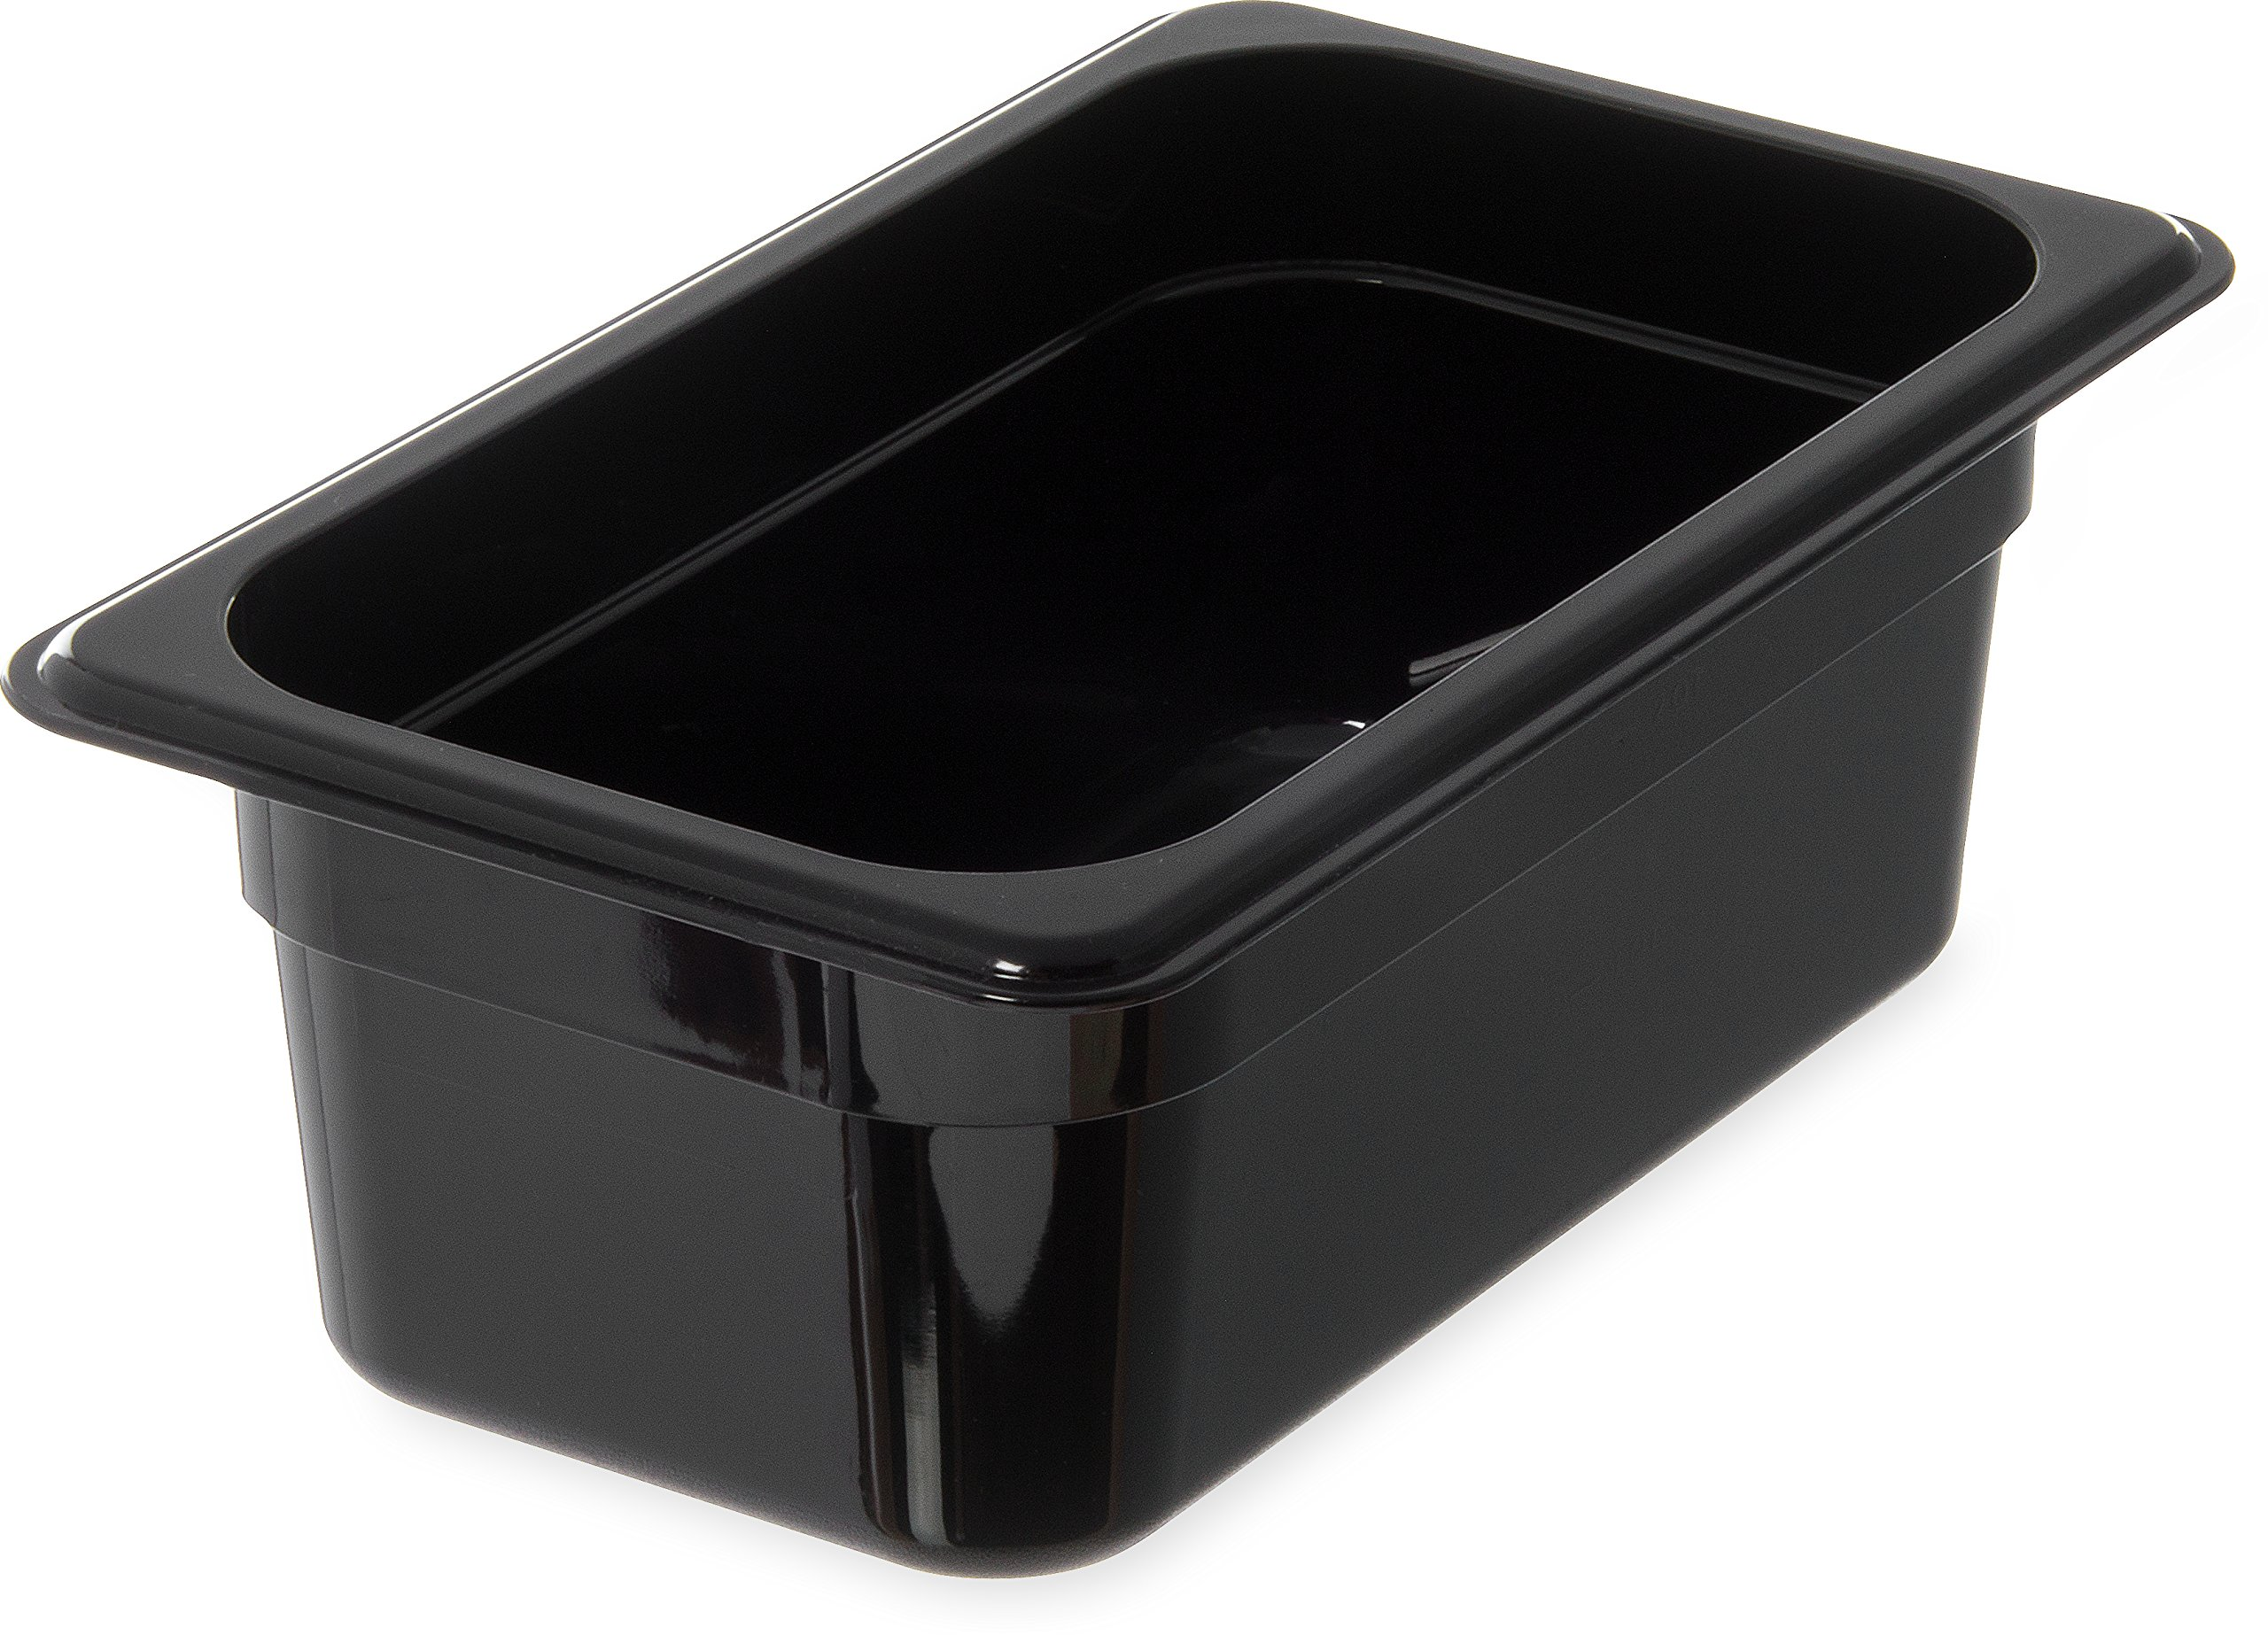 Carlisle 3088103 High Heat Food Pan, 2.8 qt Capacity, 10-1/4'' Length x 6-3/8'' Width x 4'' Depth, Black (Case of 6)